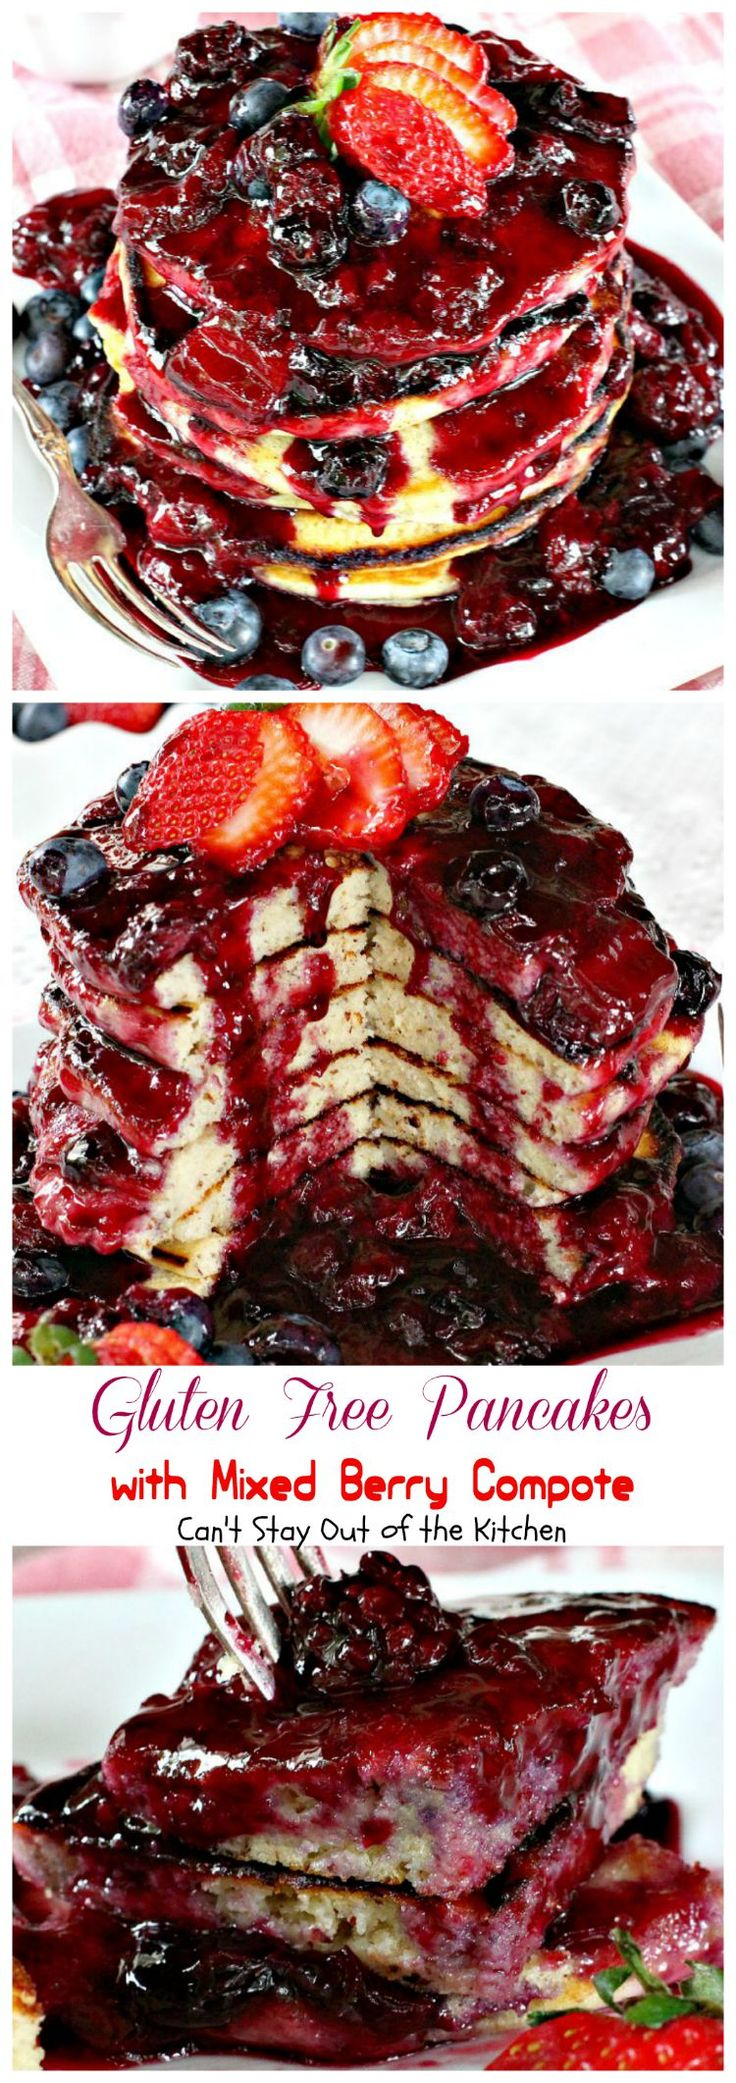 Gluten Free Pancakes with Mixed Berry Compote | Can't Stay Out of the Kitchen